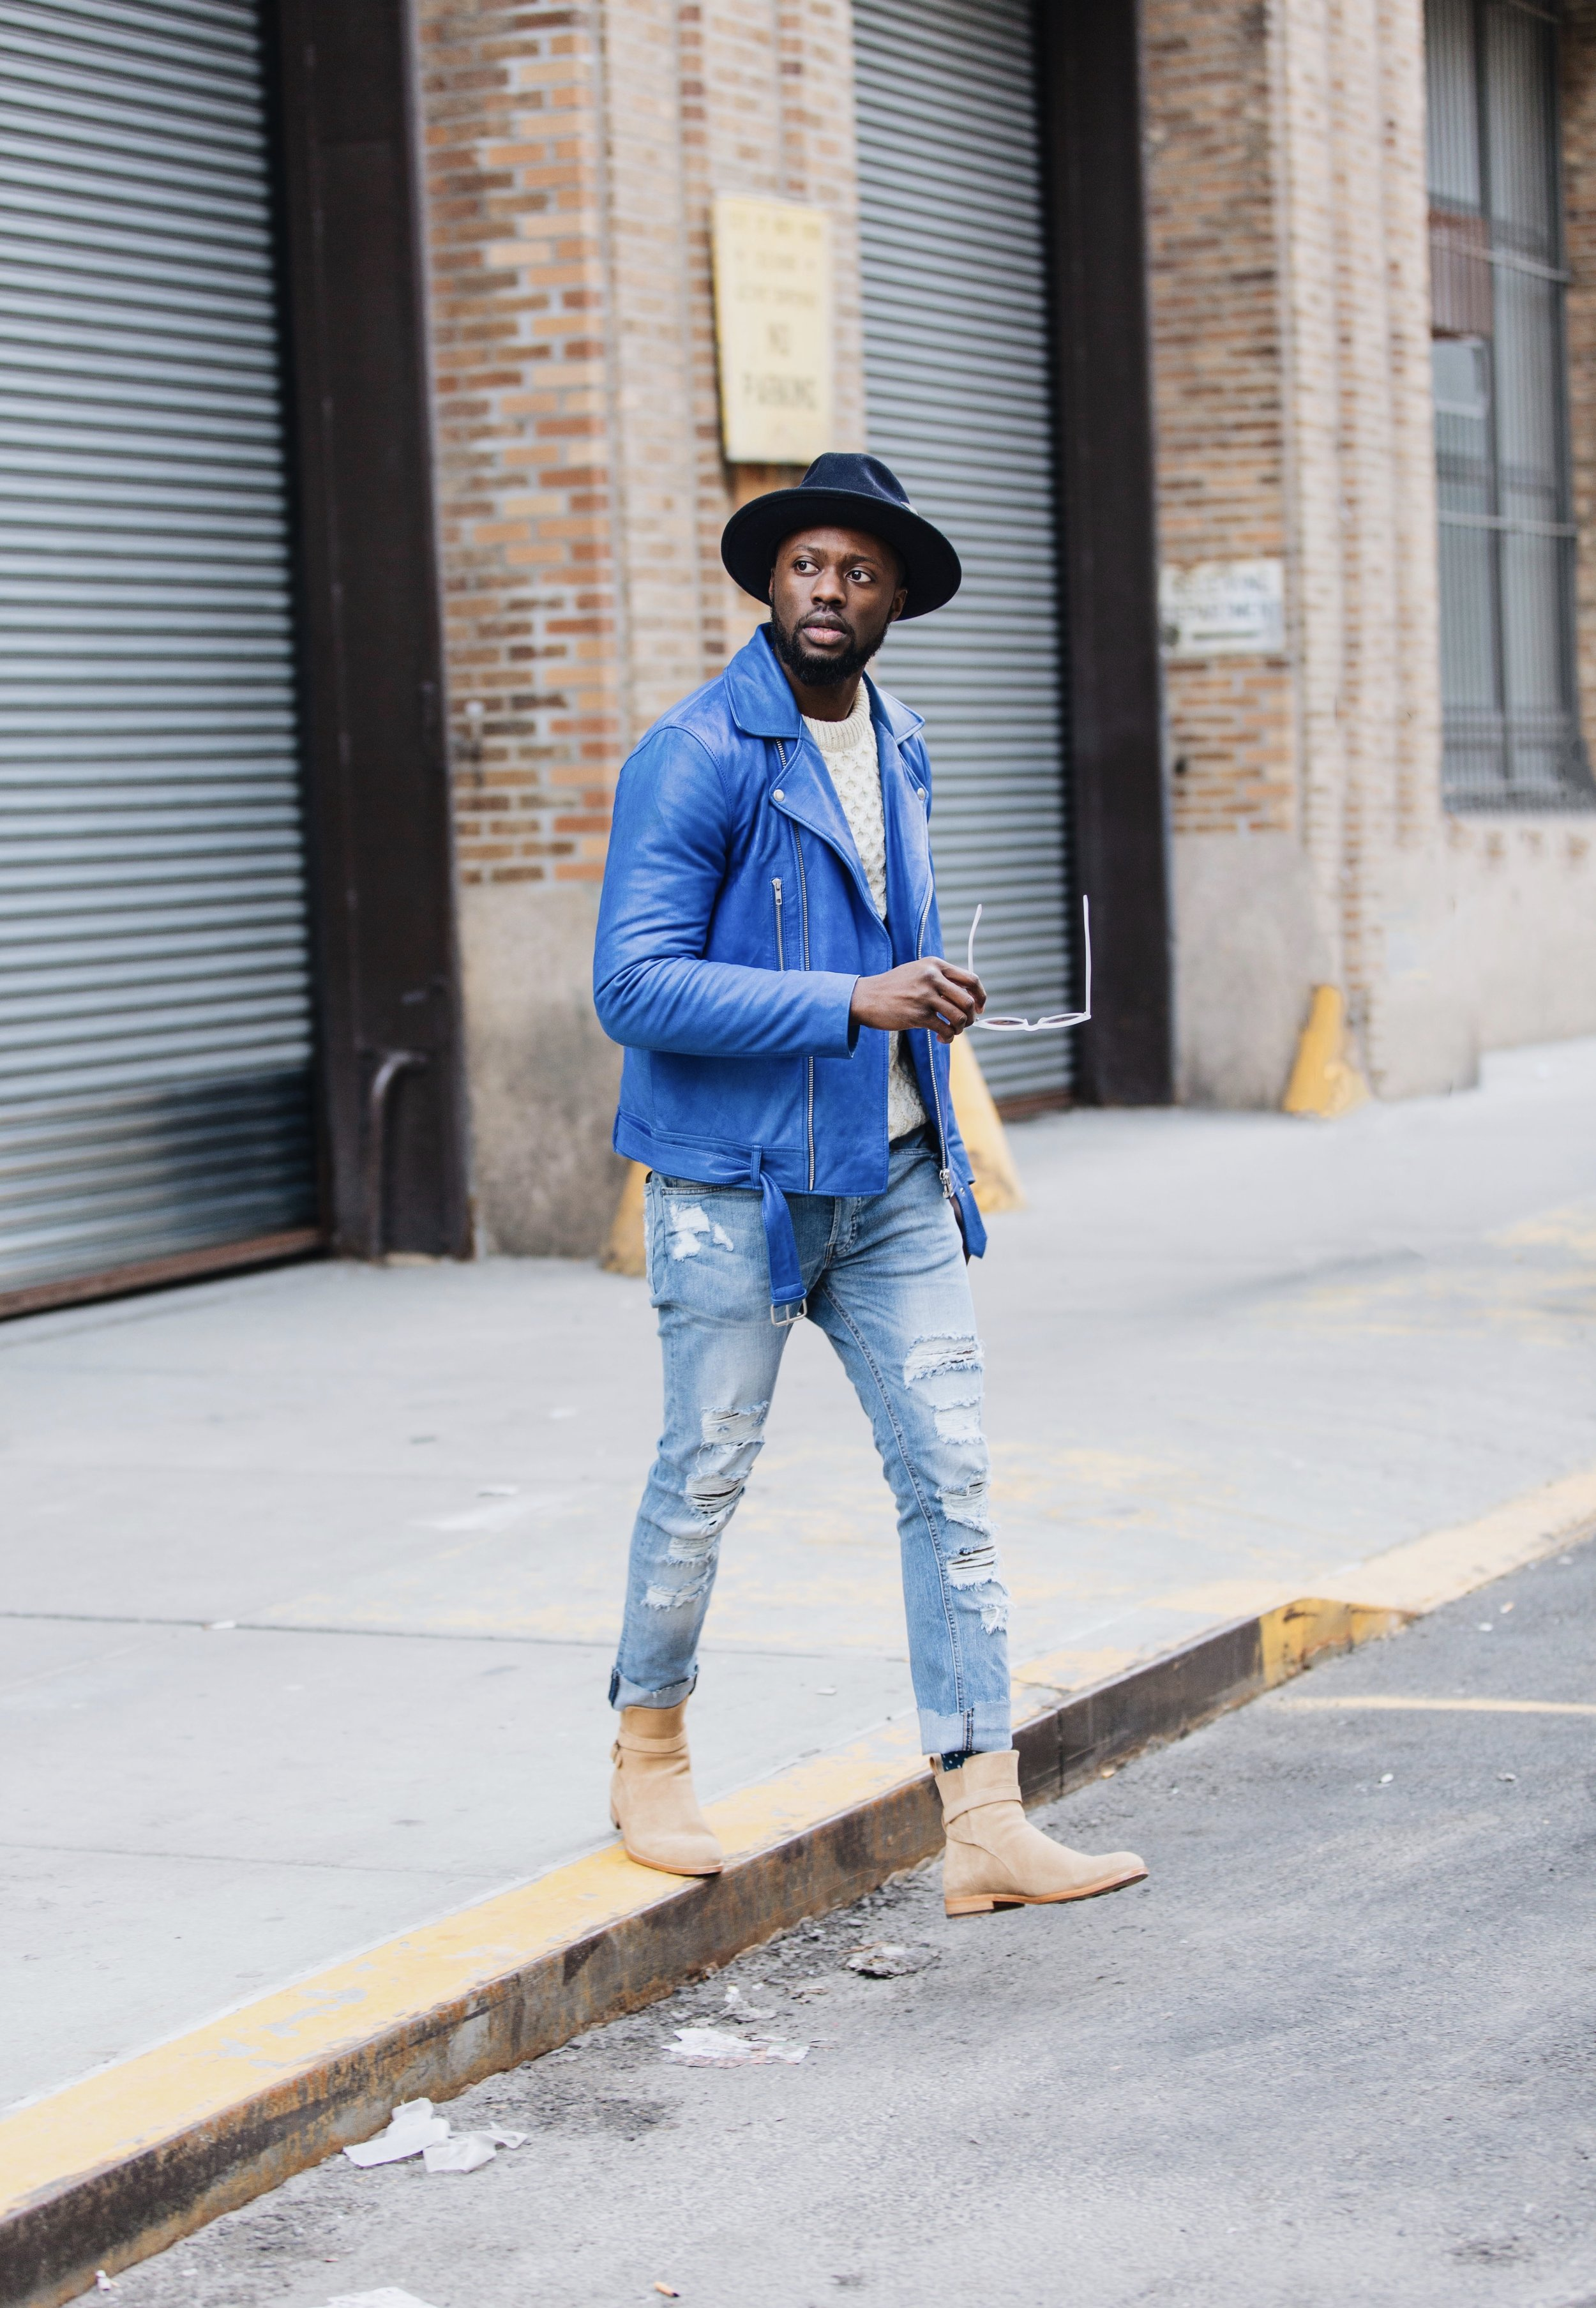 The Creative Gentleman wearing Taft Dylan boot in beige with royal blue leather jacket, cream waffle sweater, light blue ripped jeans, clear framed sunglasses,and navy blue fedora hat. This image was taking as part of The Creative Gentleman and Taft collaboration for New York Fashion Week Men's 2018 NYFWM AW18 on how to style Taft Boots.